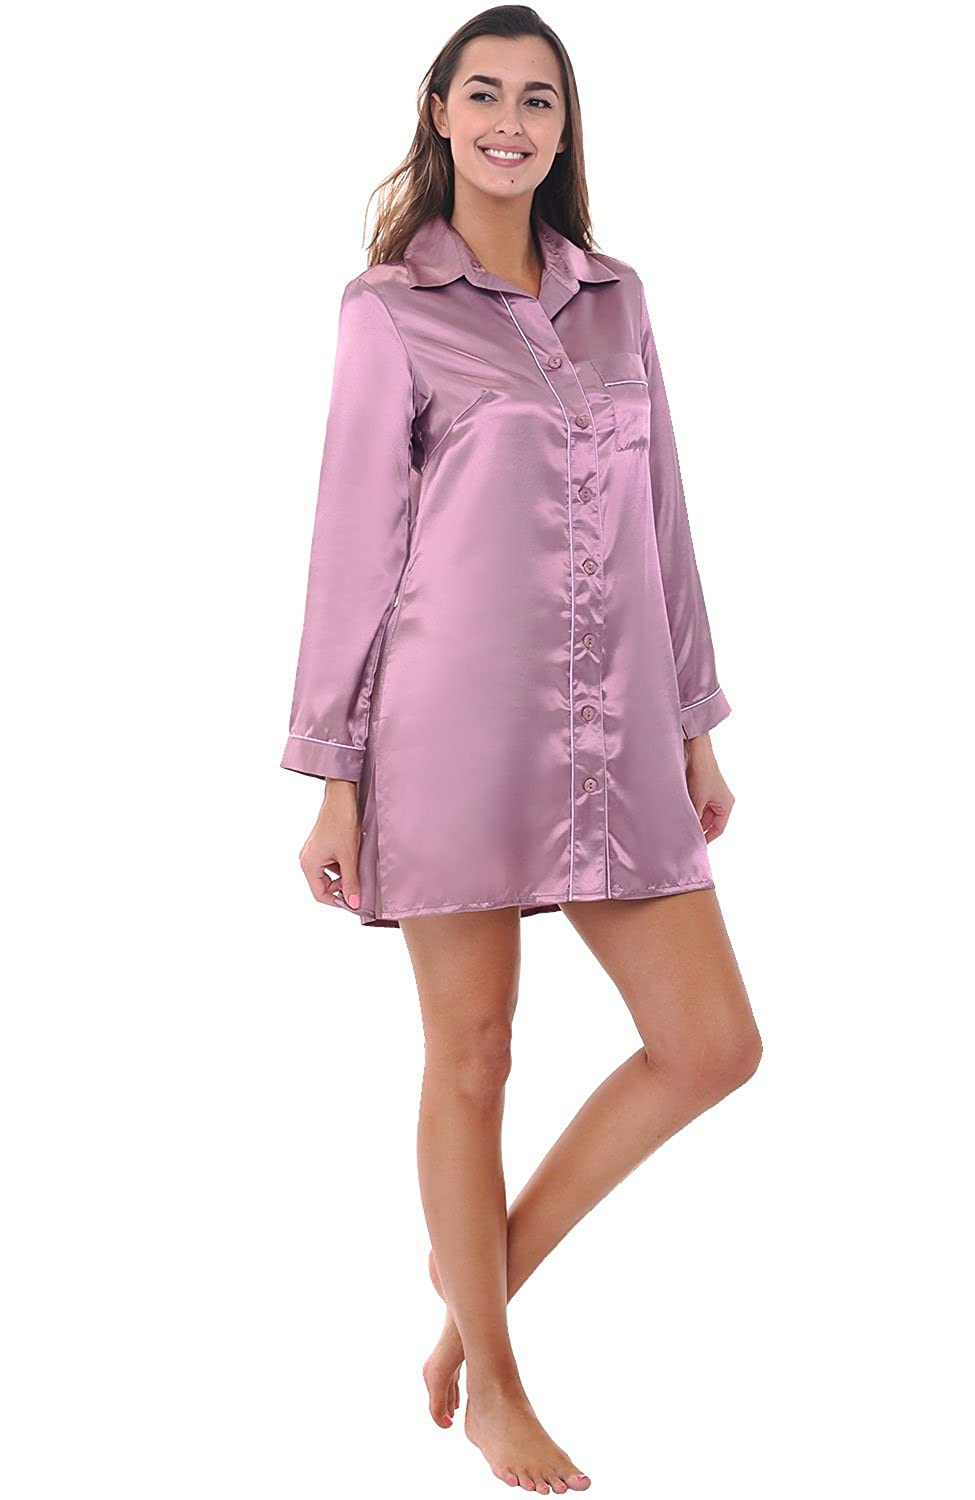 25184619d5b3a RISK FREE GUARANTEE - We know that one of the biggest drawbacks to buying  sleepwear online is the fact that you can\'t try the product in person -  that is ...